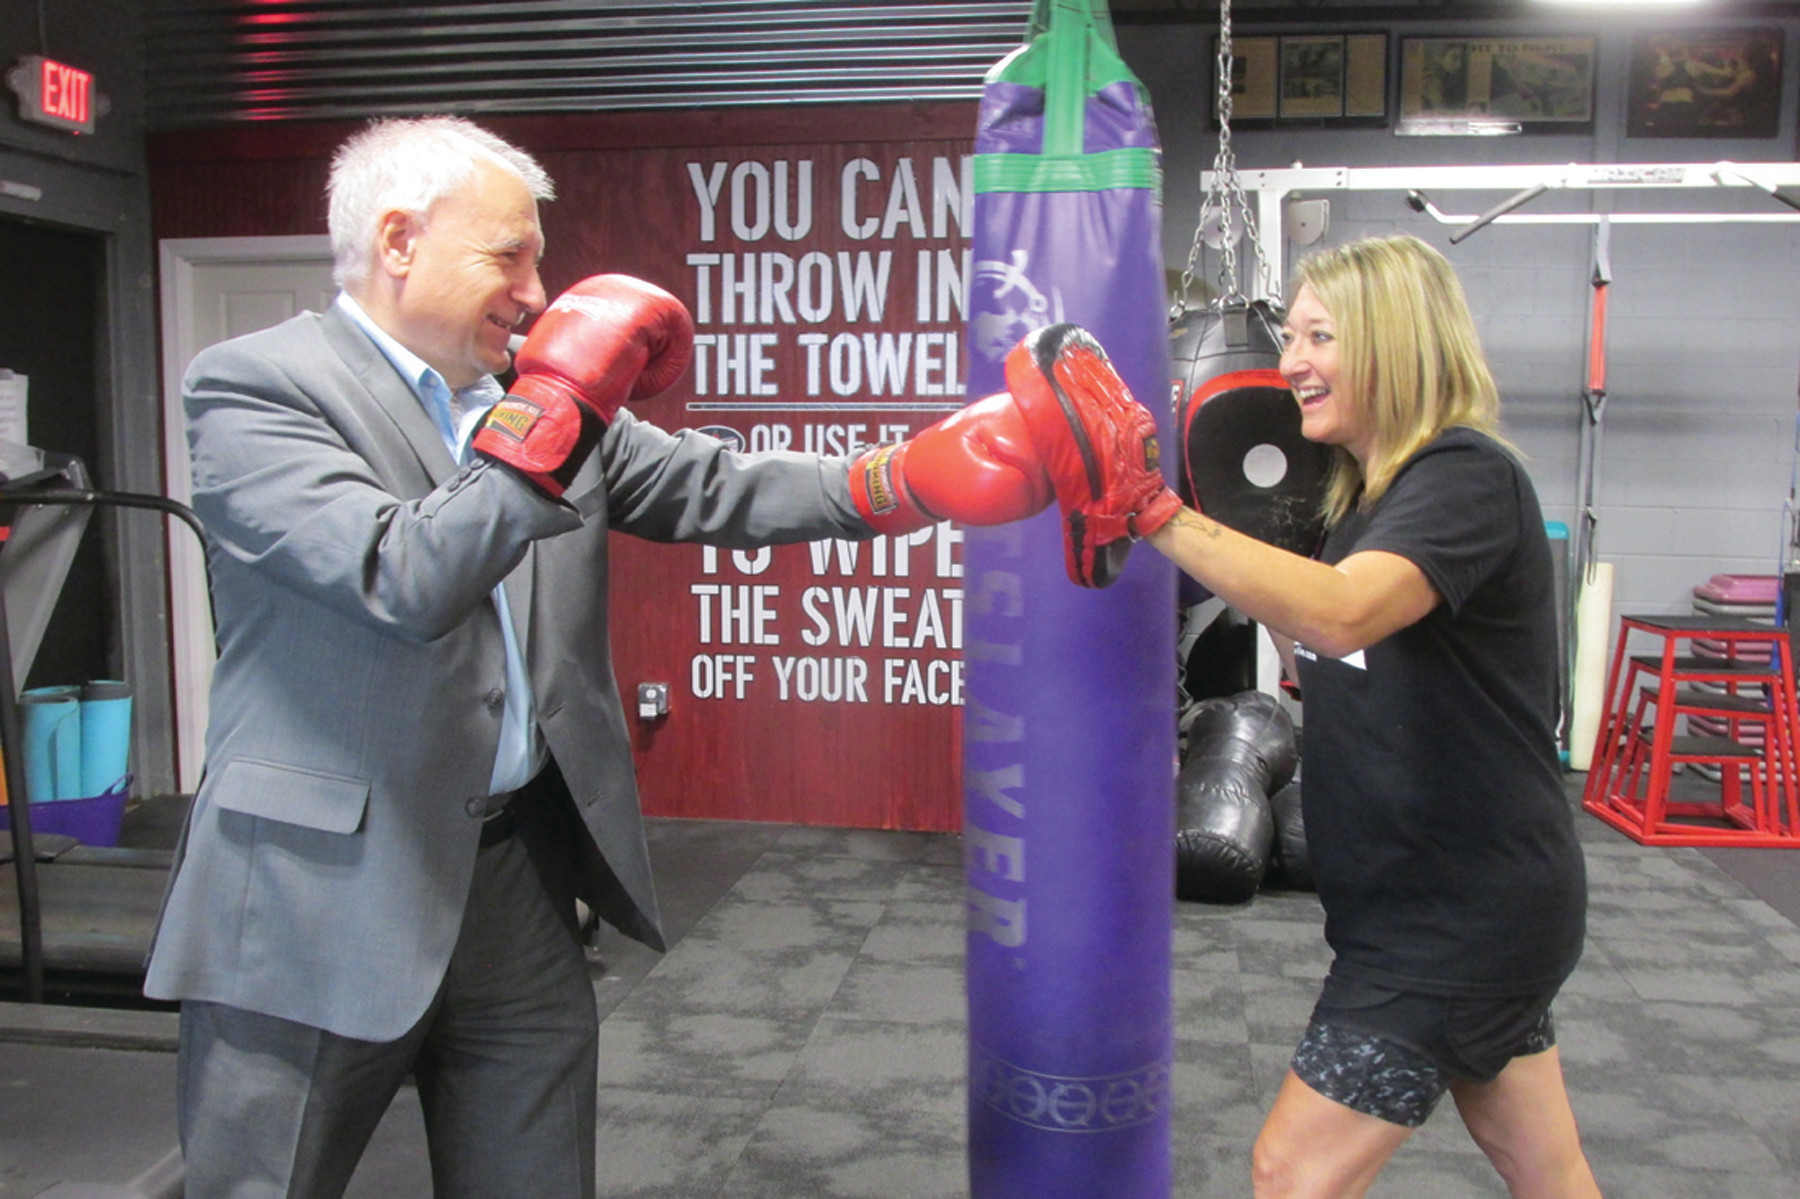 POWER PUNCH: Johnston Mayor Joseph Polisena tests his mettle during a fun-filled exchange with Christina Rondeau, the popular owner-operator of Rondeau's Kickboxing and Fitness that has moved to 609 Killingly Street and held its Grand Opening Saturday.